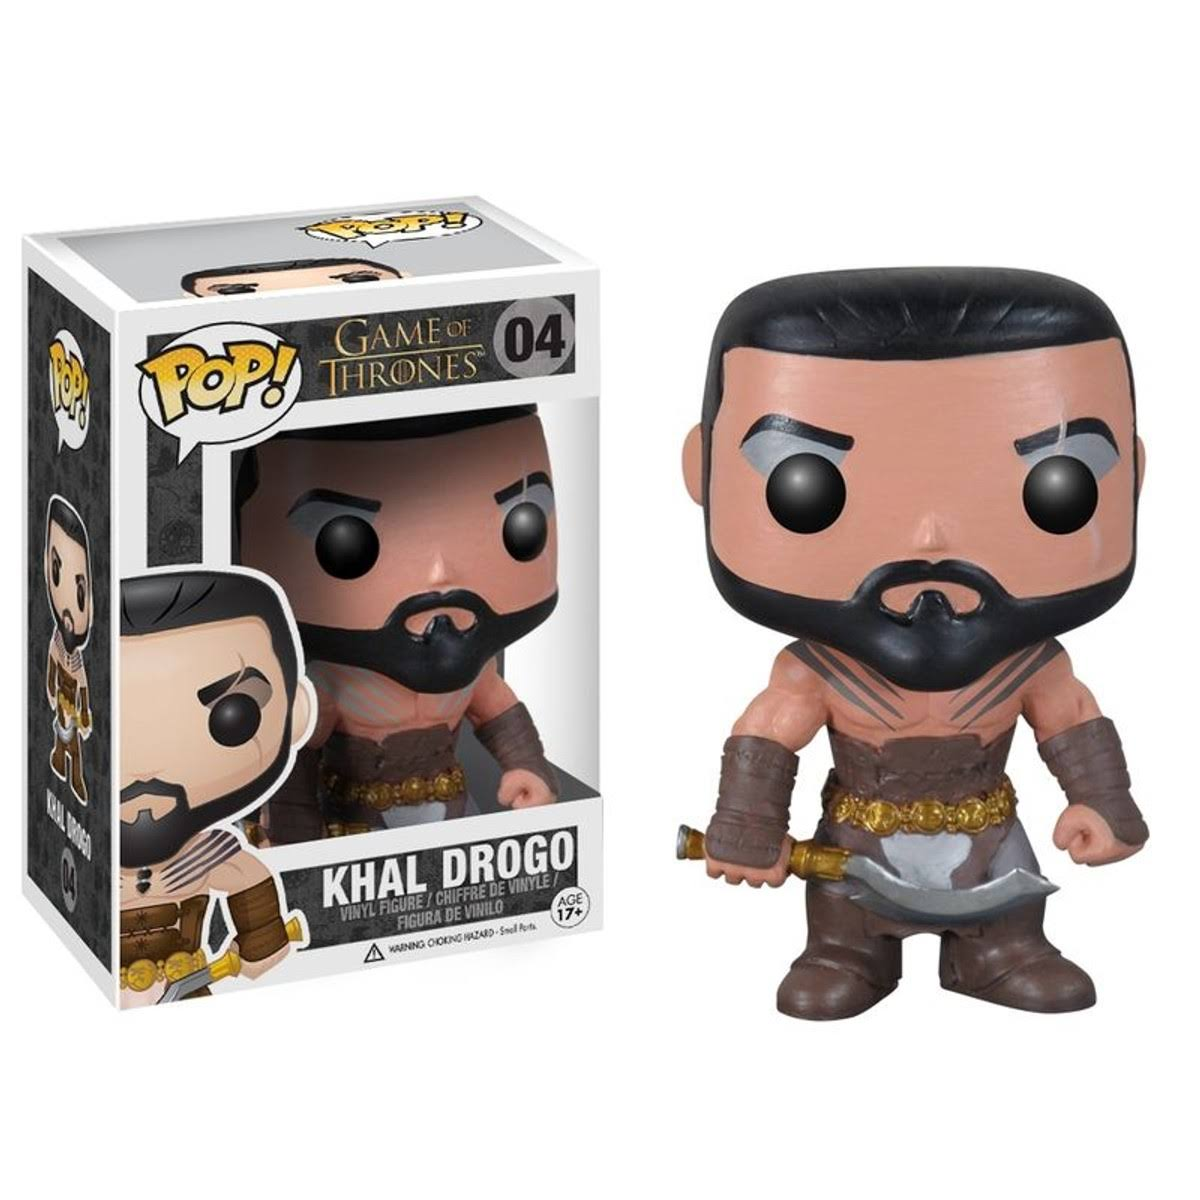 Funko Pop! Game of Thrones Khal Drogo Vinyl Figure